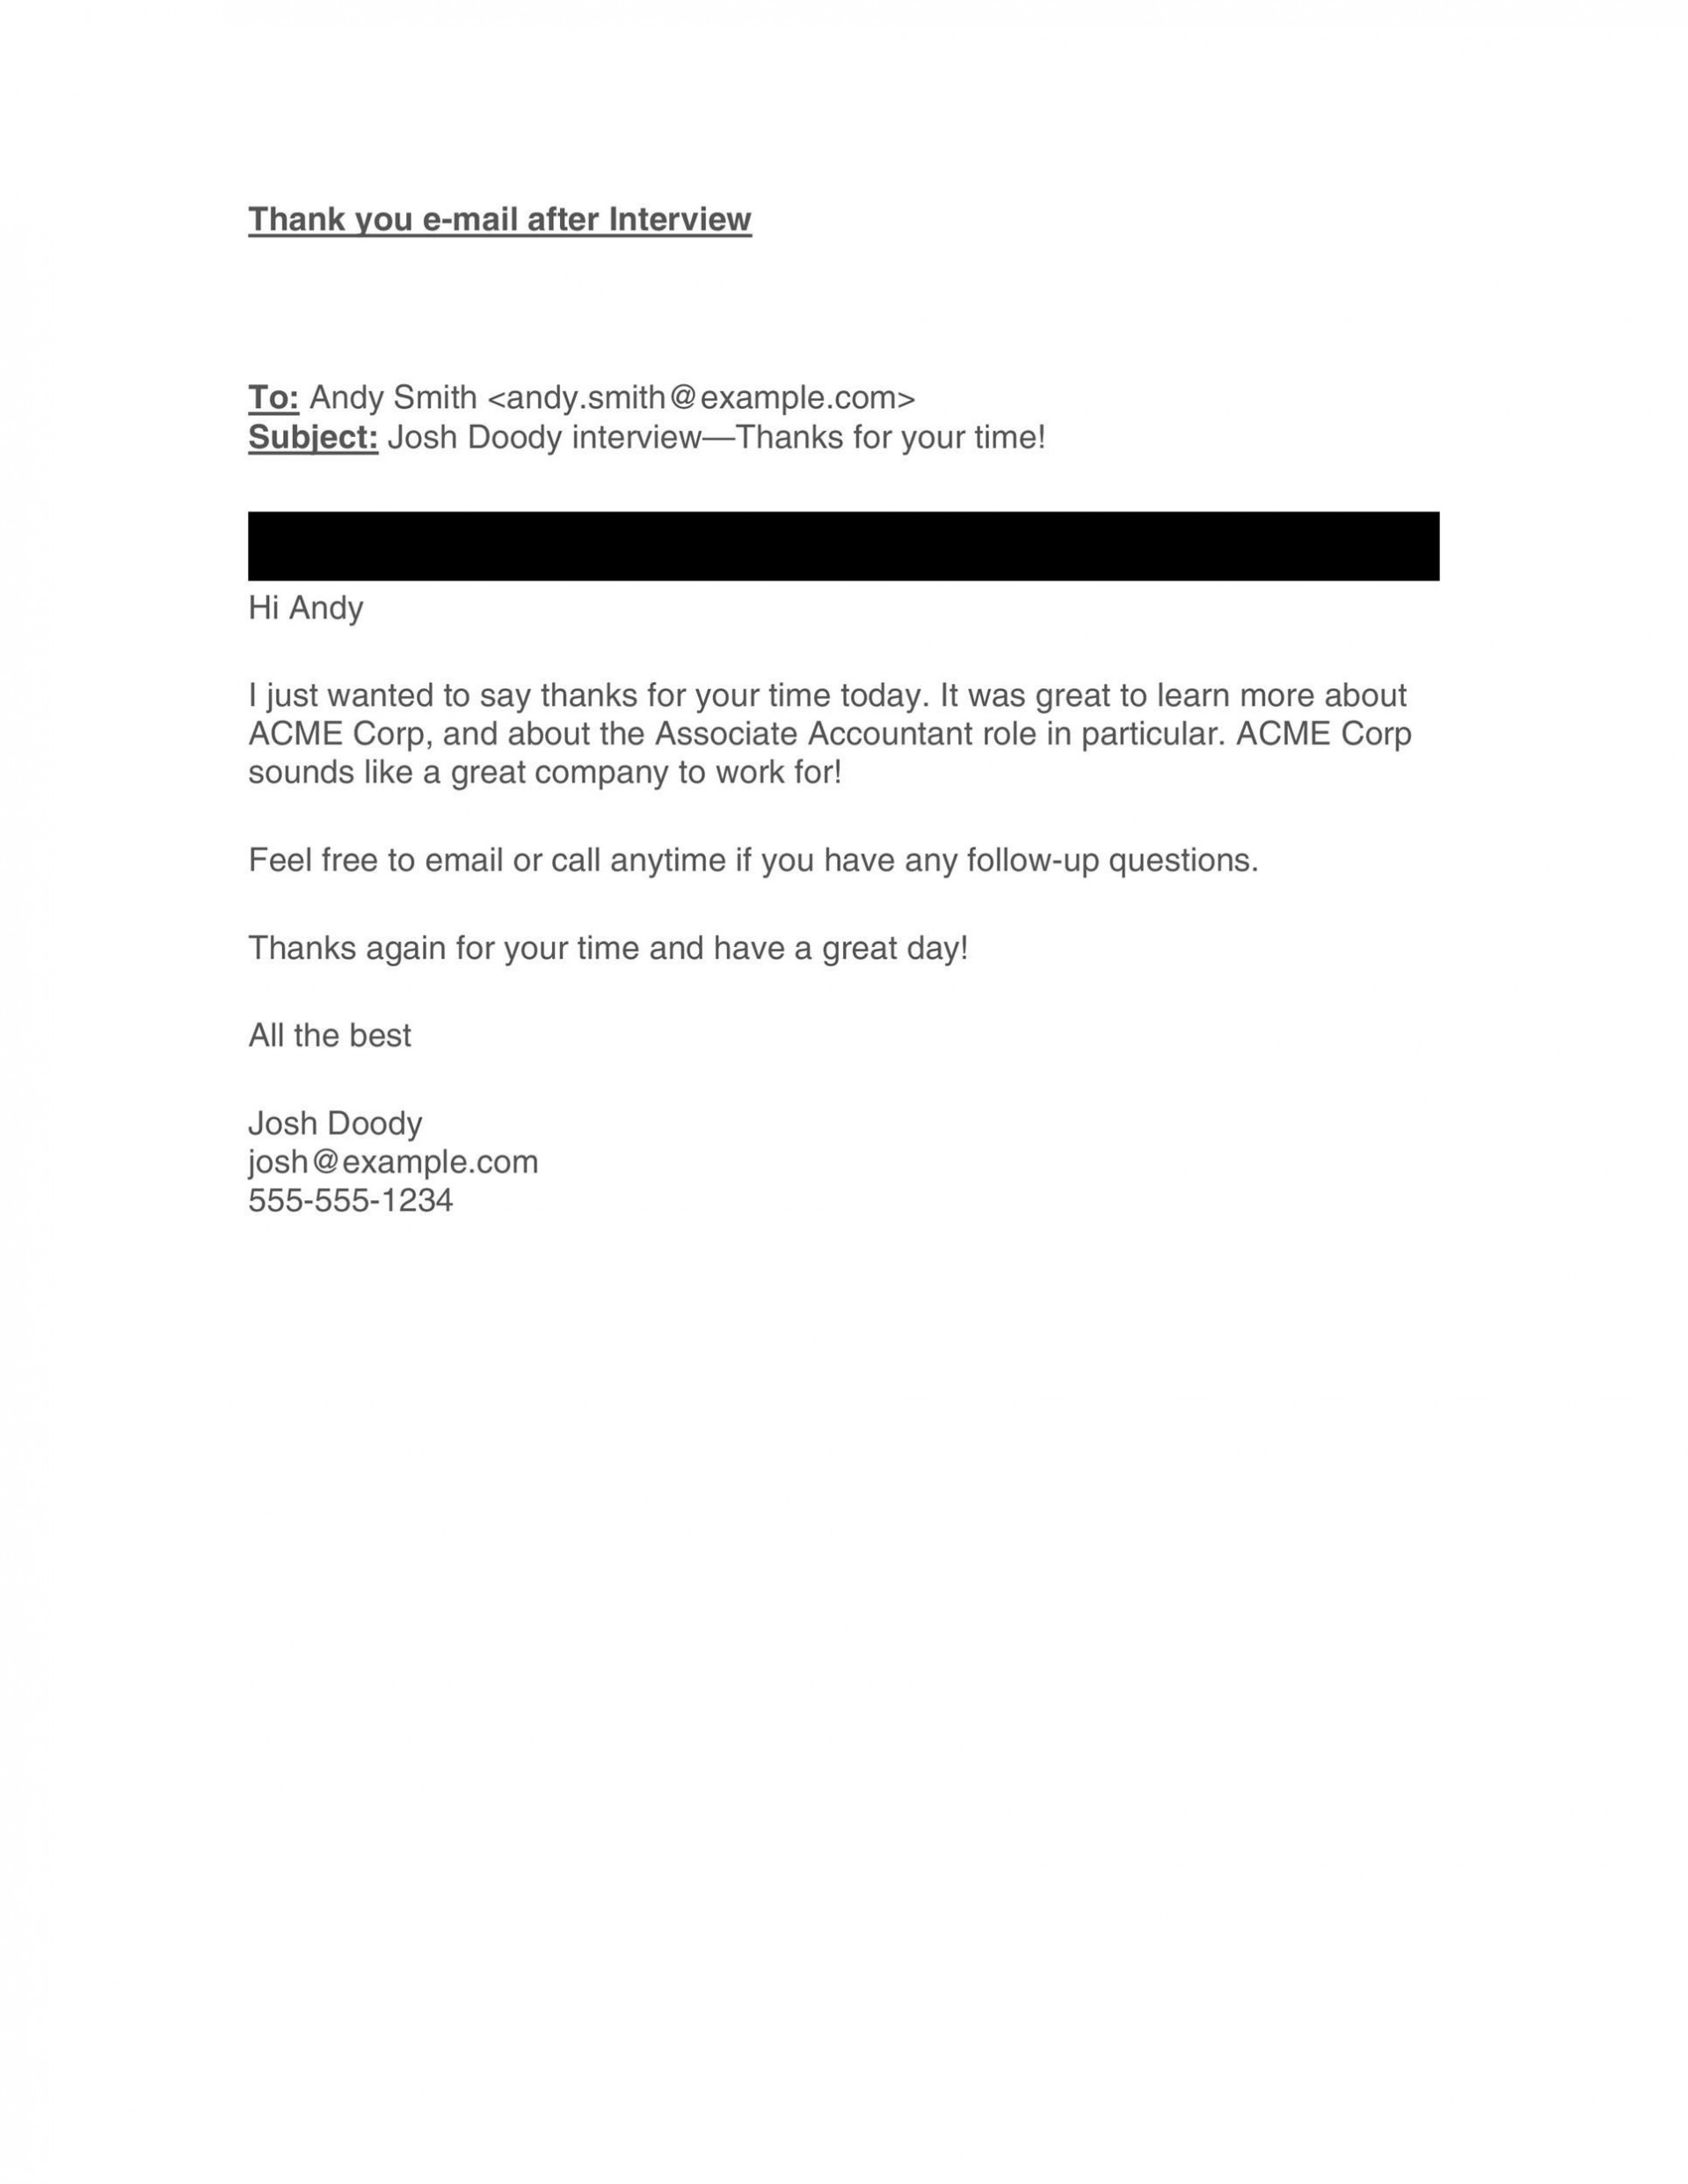 008 Formidable Follow Up Letter After Interview High Resolution  Handwritten Note Email Sample For Job Template1920